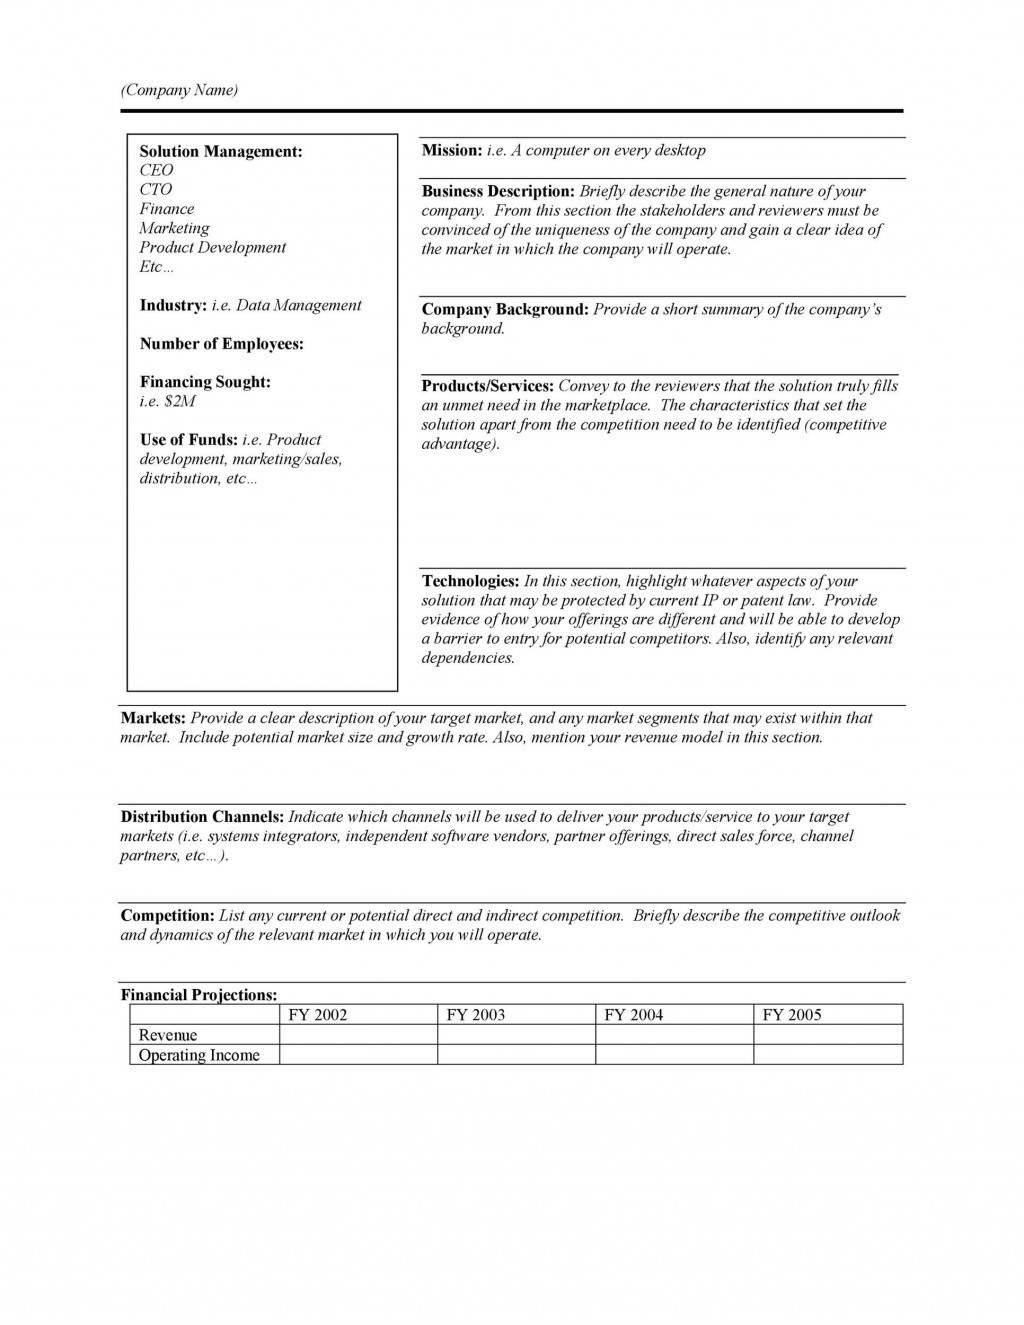 008 Shocking Executive Summary Word Template Free Download High Definition Large